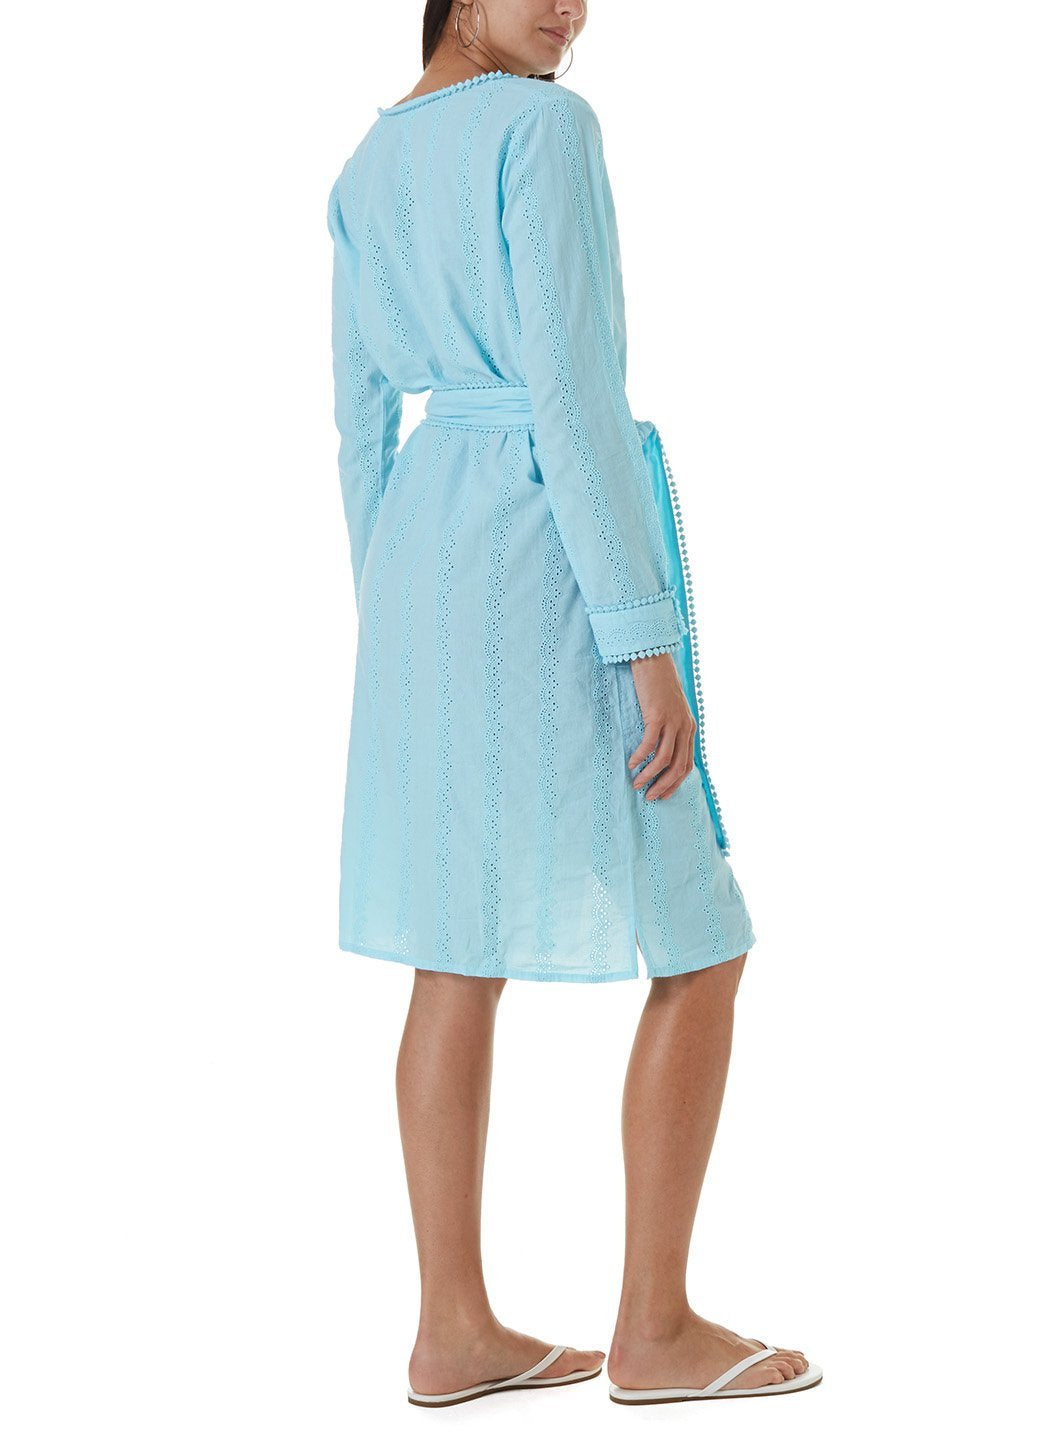 patty celeste long kaftan